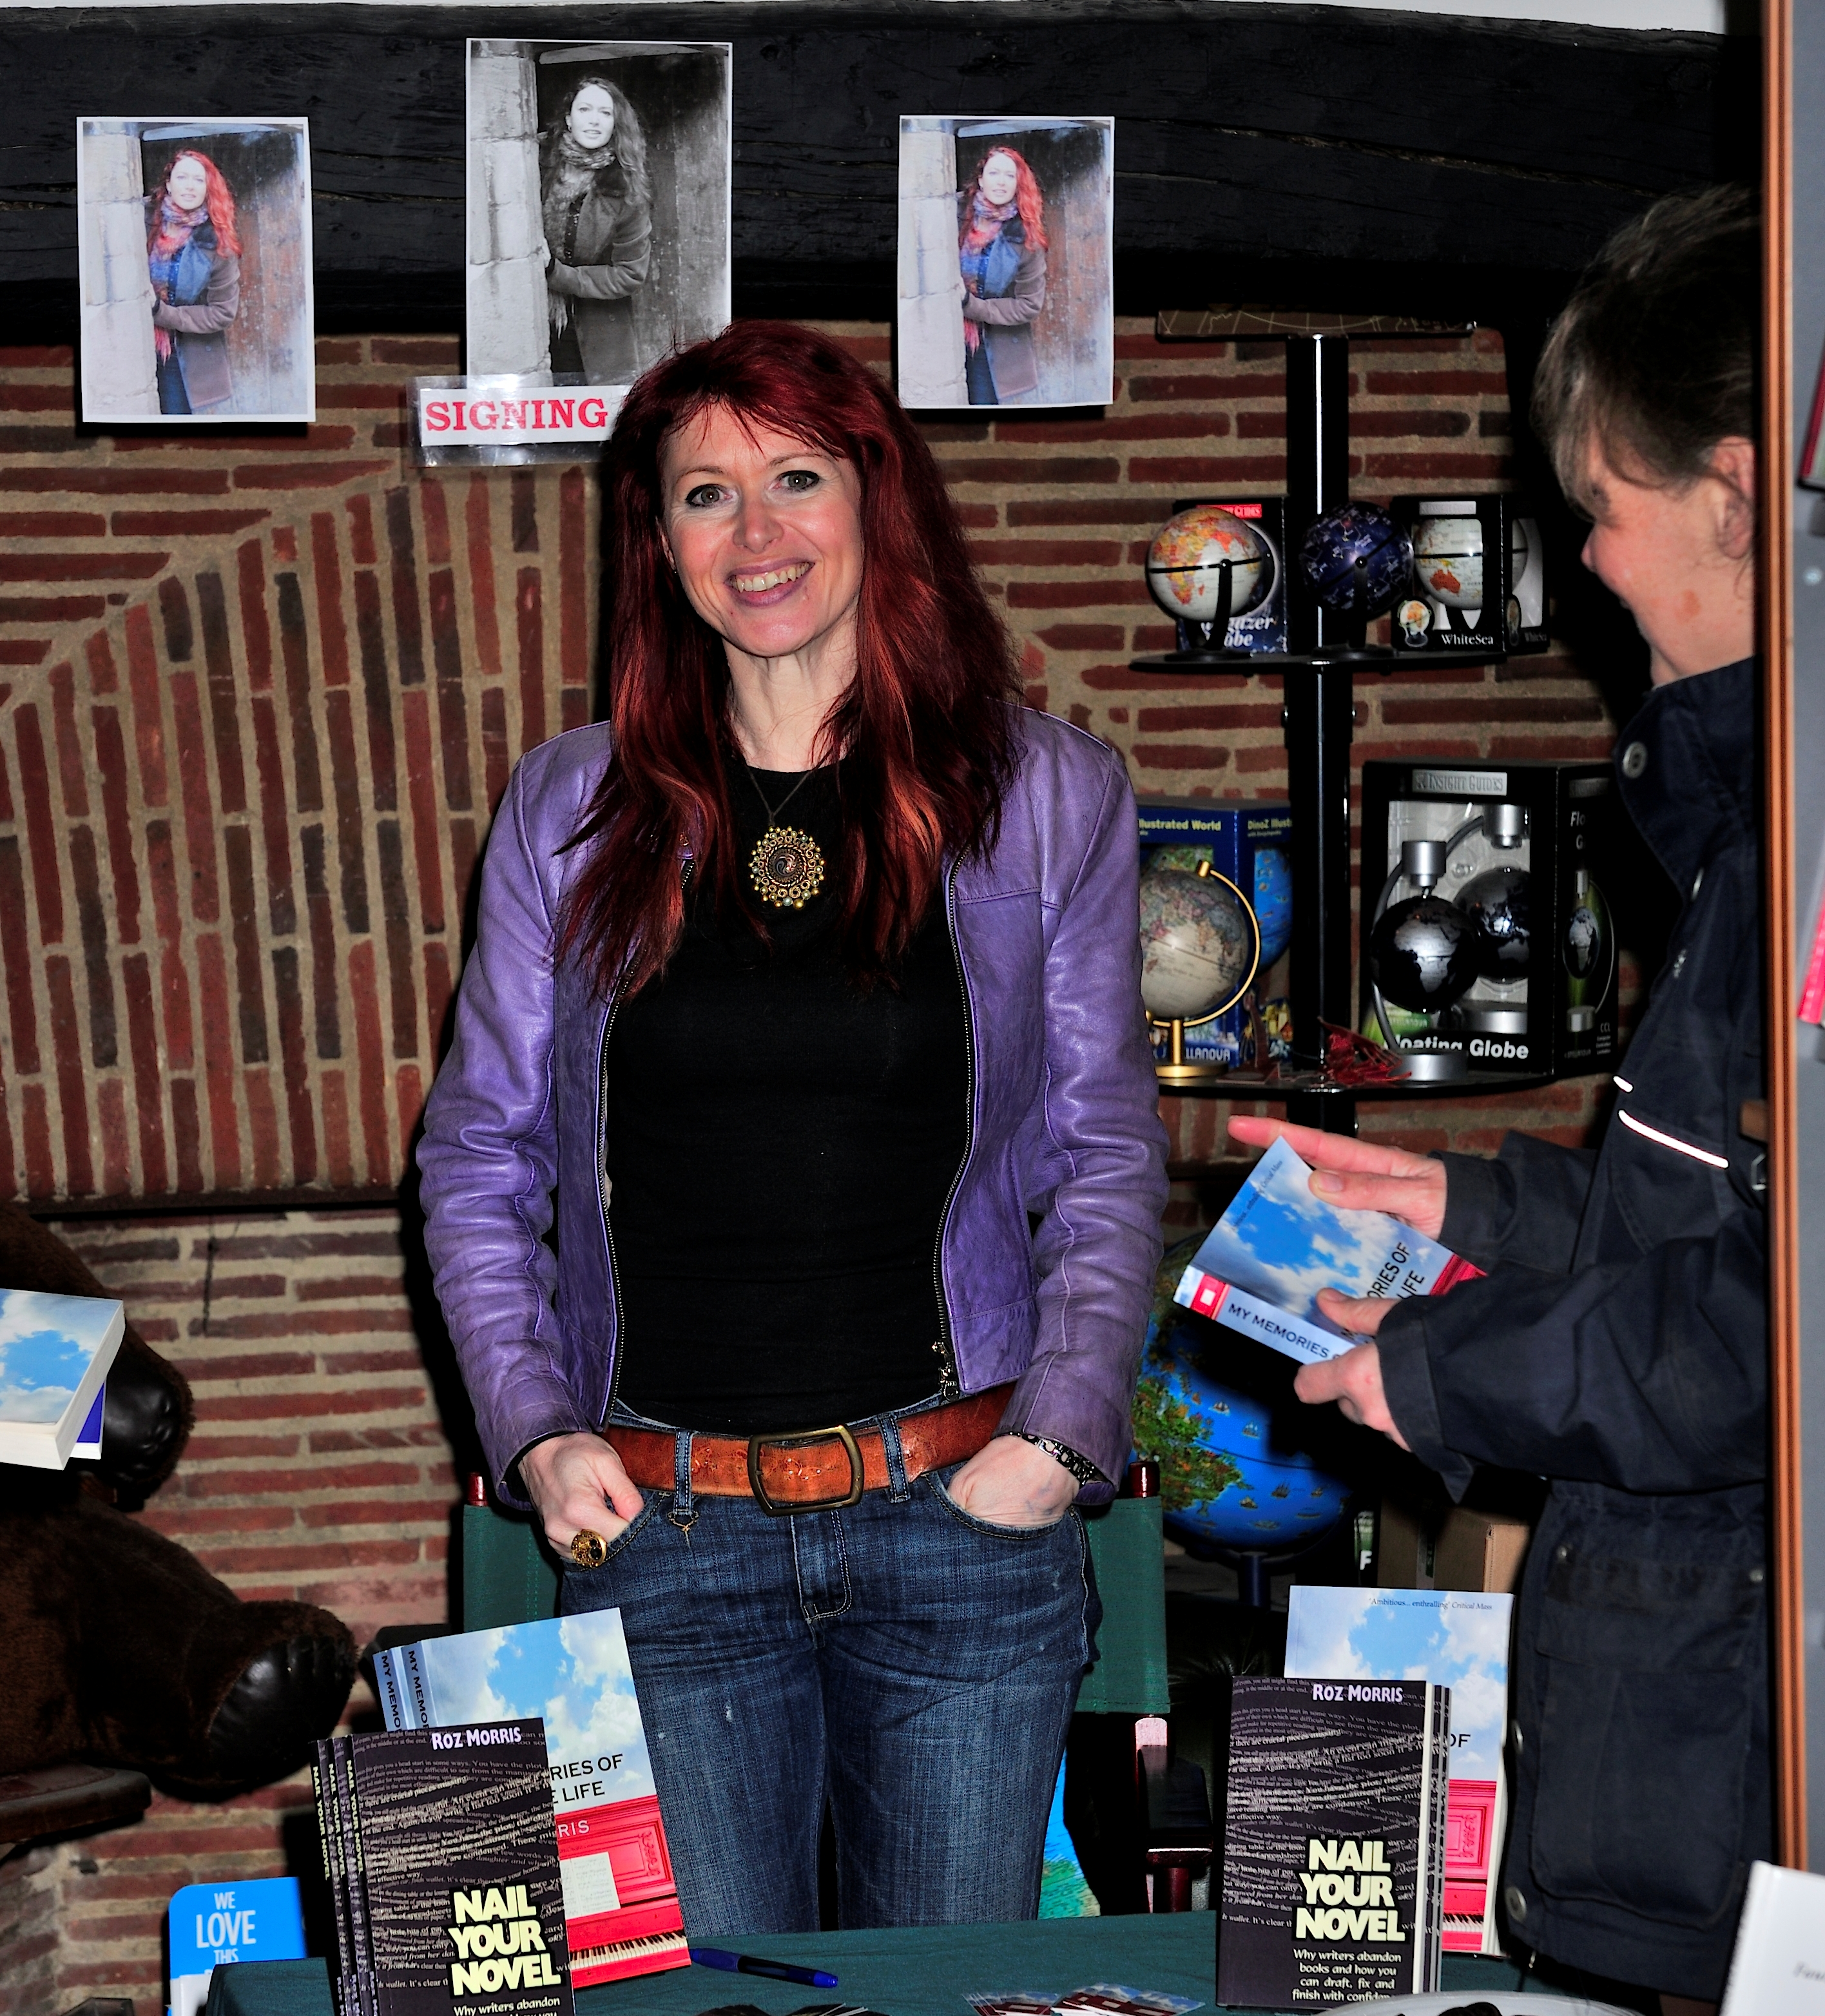 Indie Author Roz Morris Signed Her Self-published Books In A Bookshop